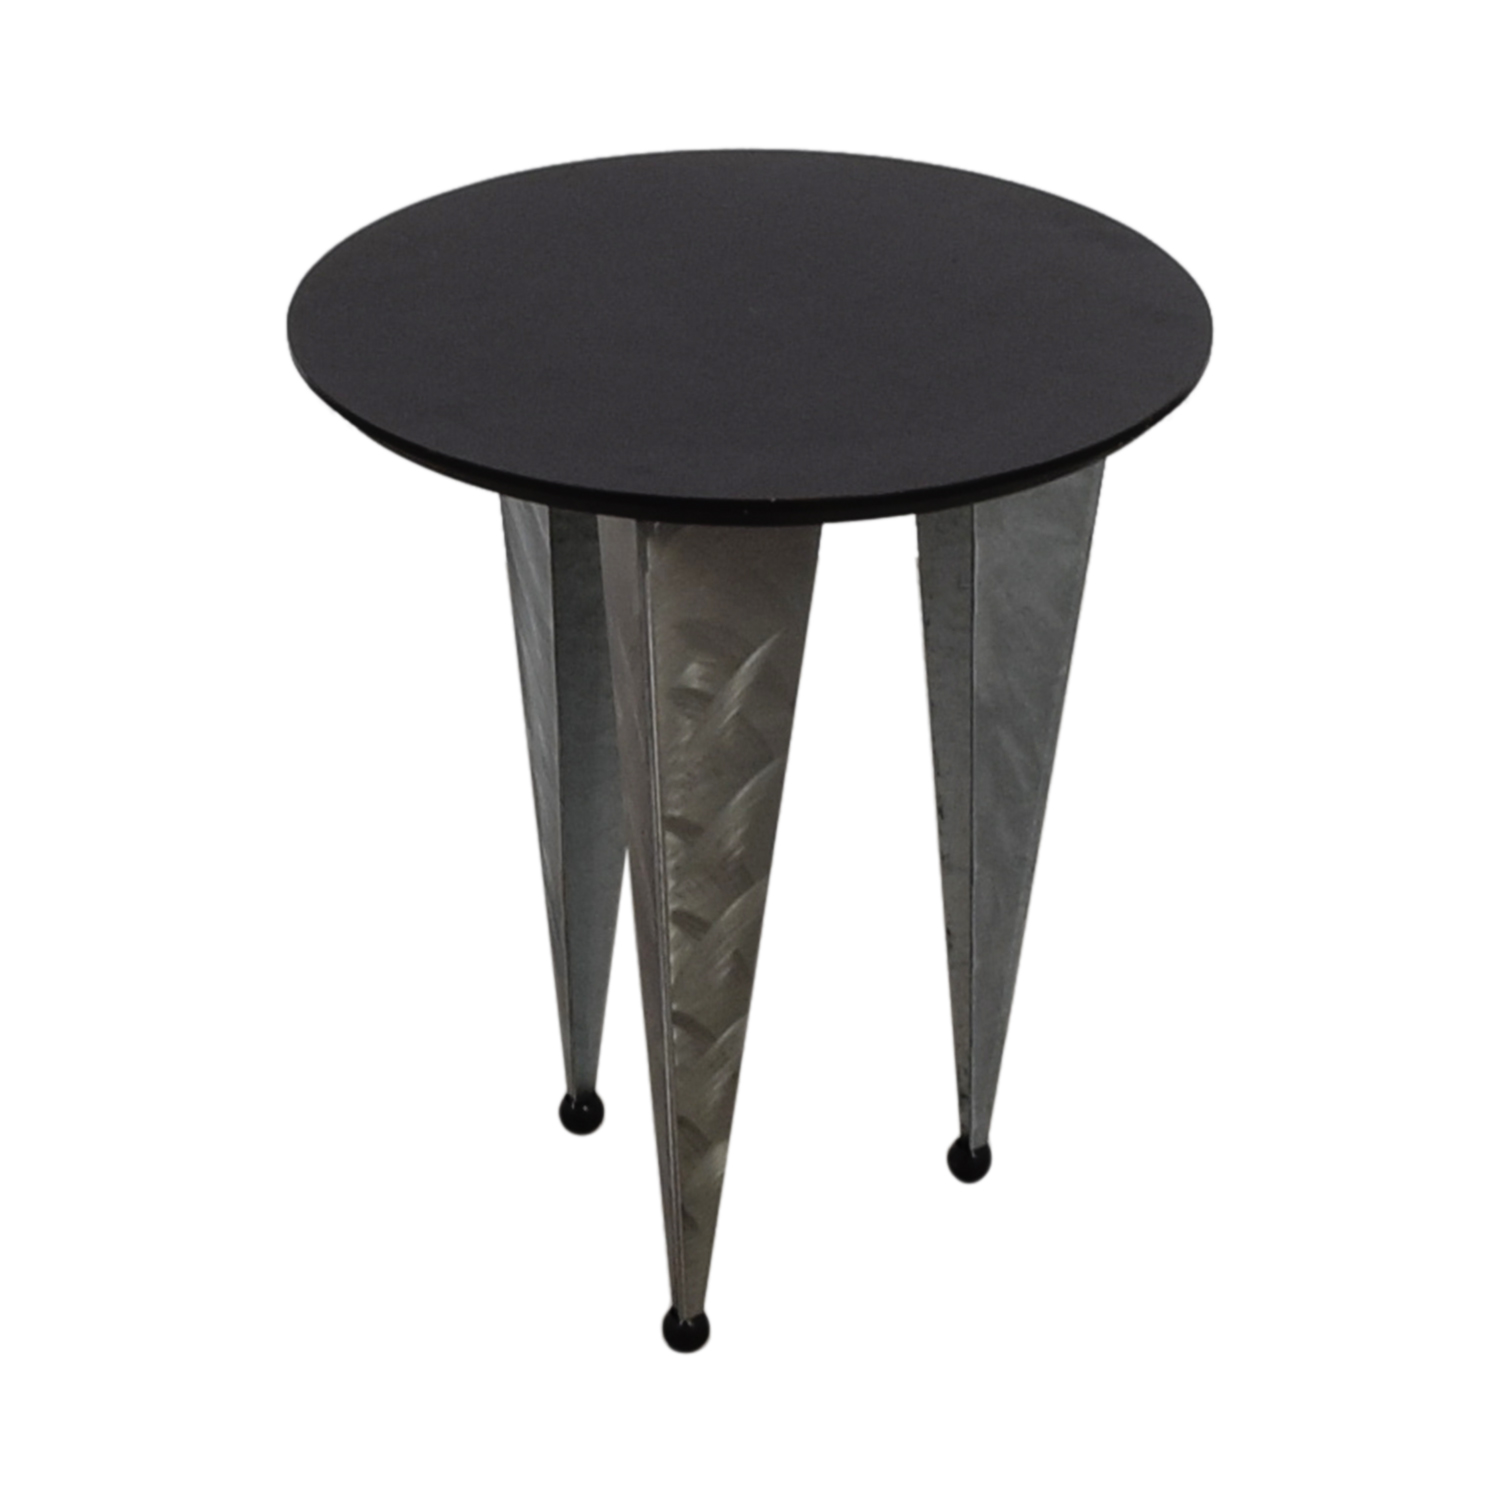 64 off art deco black round top with metallic legs end table tables. Black Bedroom Furniture Sets. Home Design Ideas